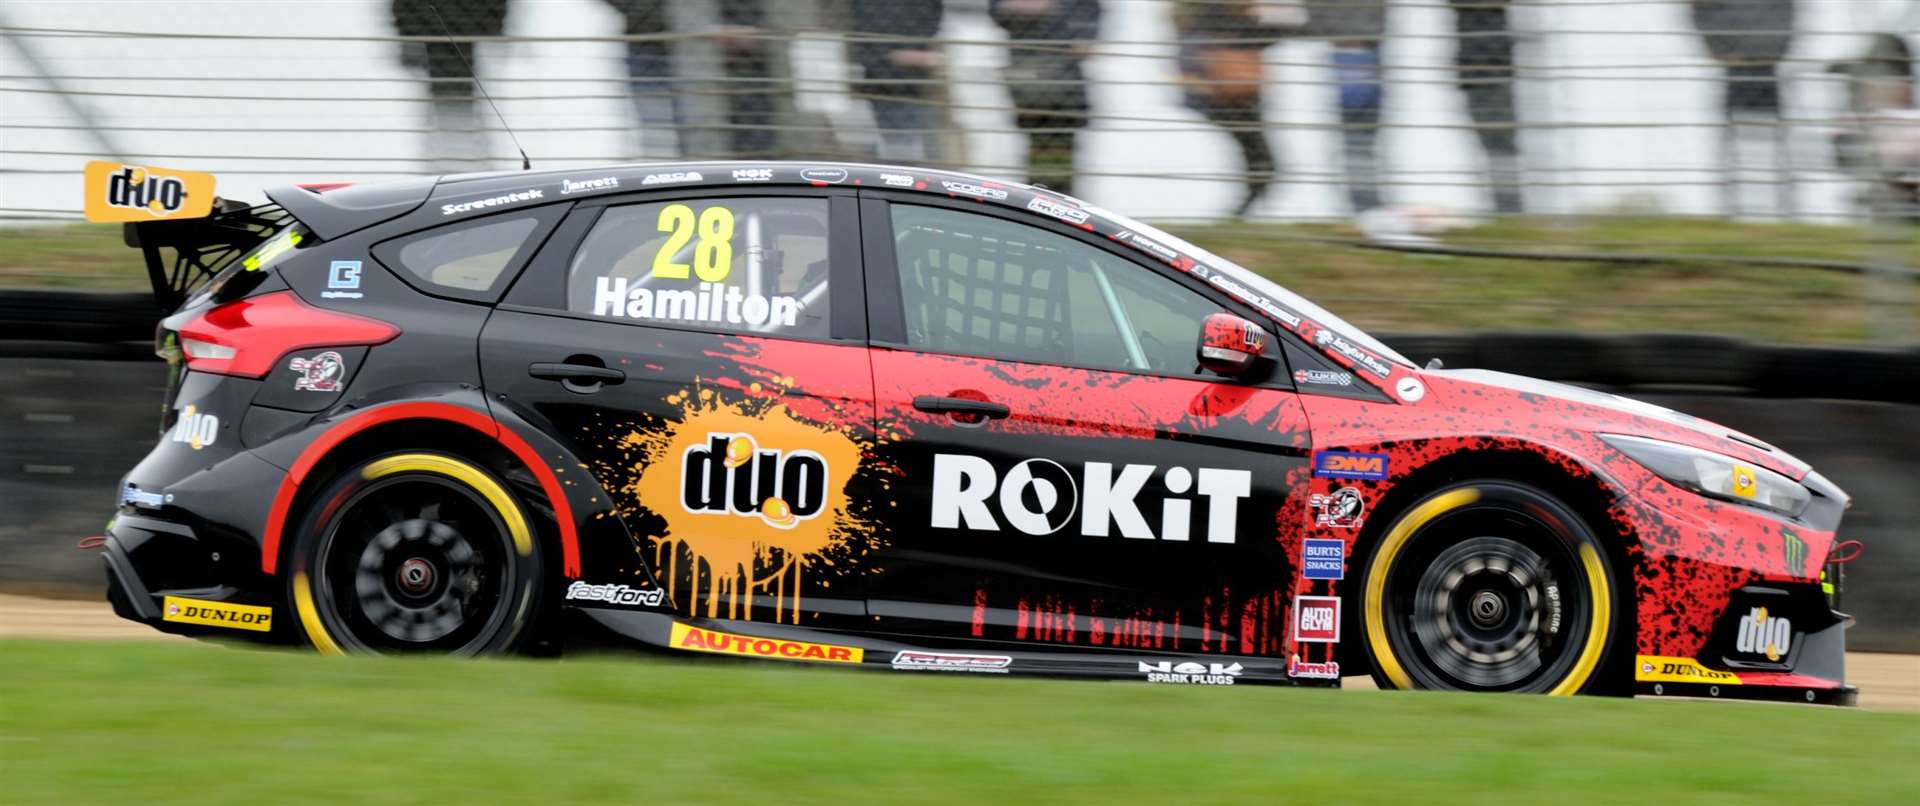 Nicolas Hamilton, brother of F1 world champion Lewis, is on the BTCC grid this season Picture: Simon Hildrew